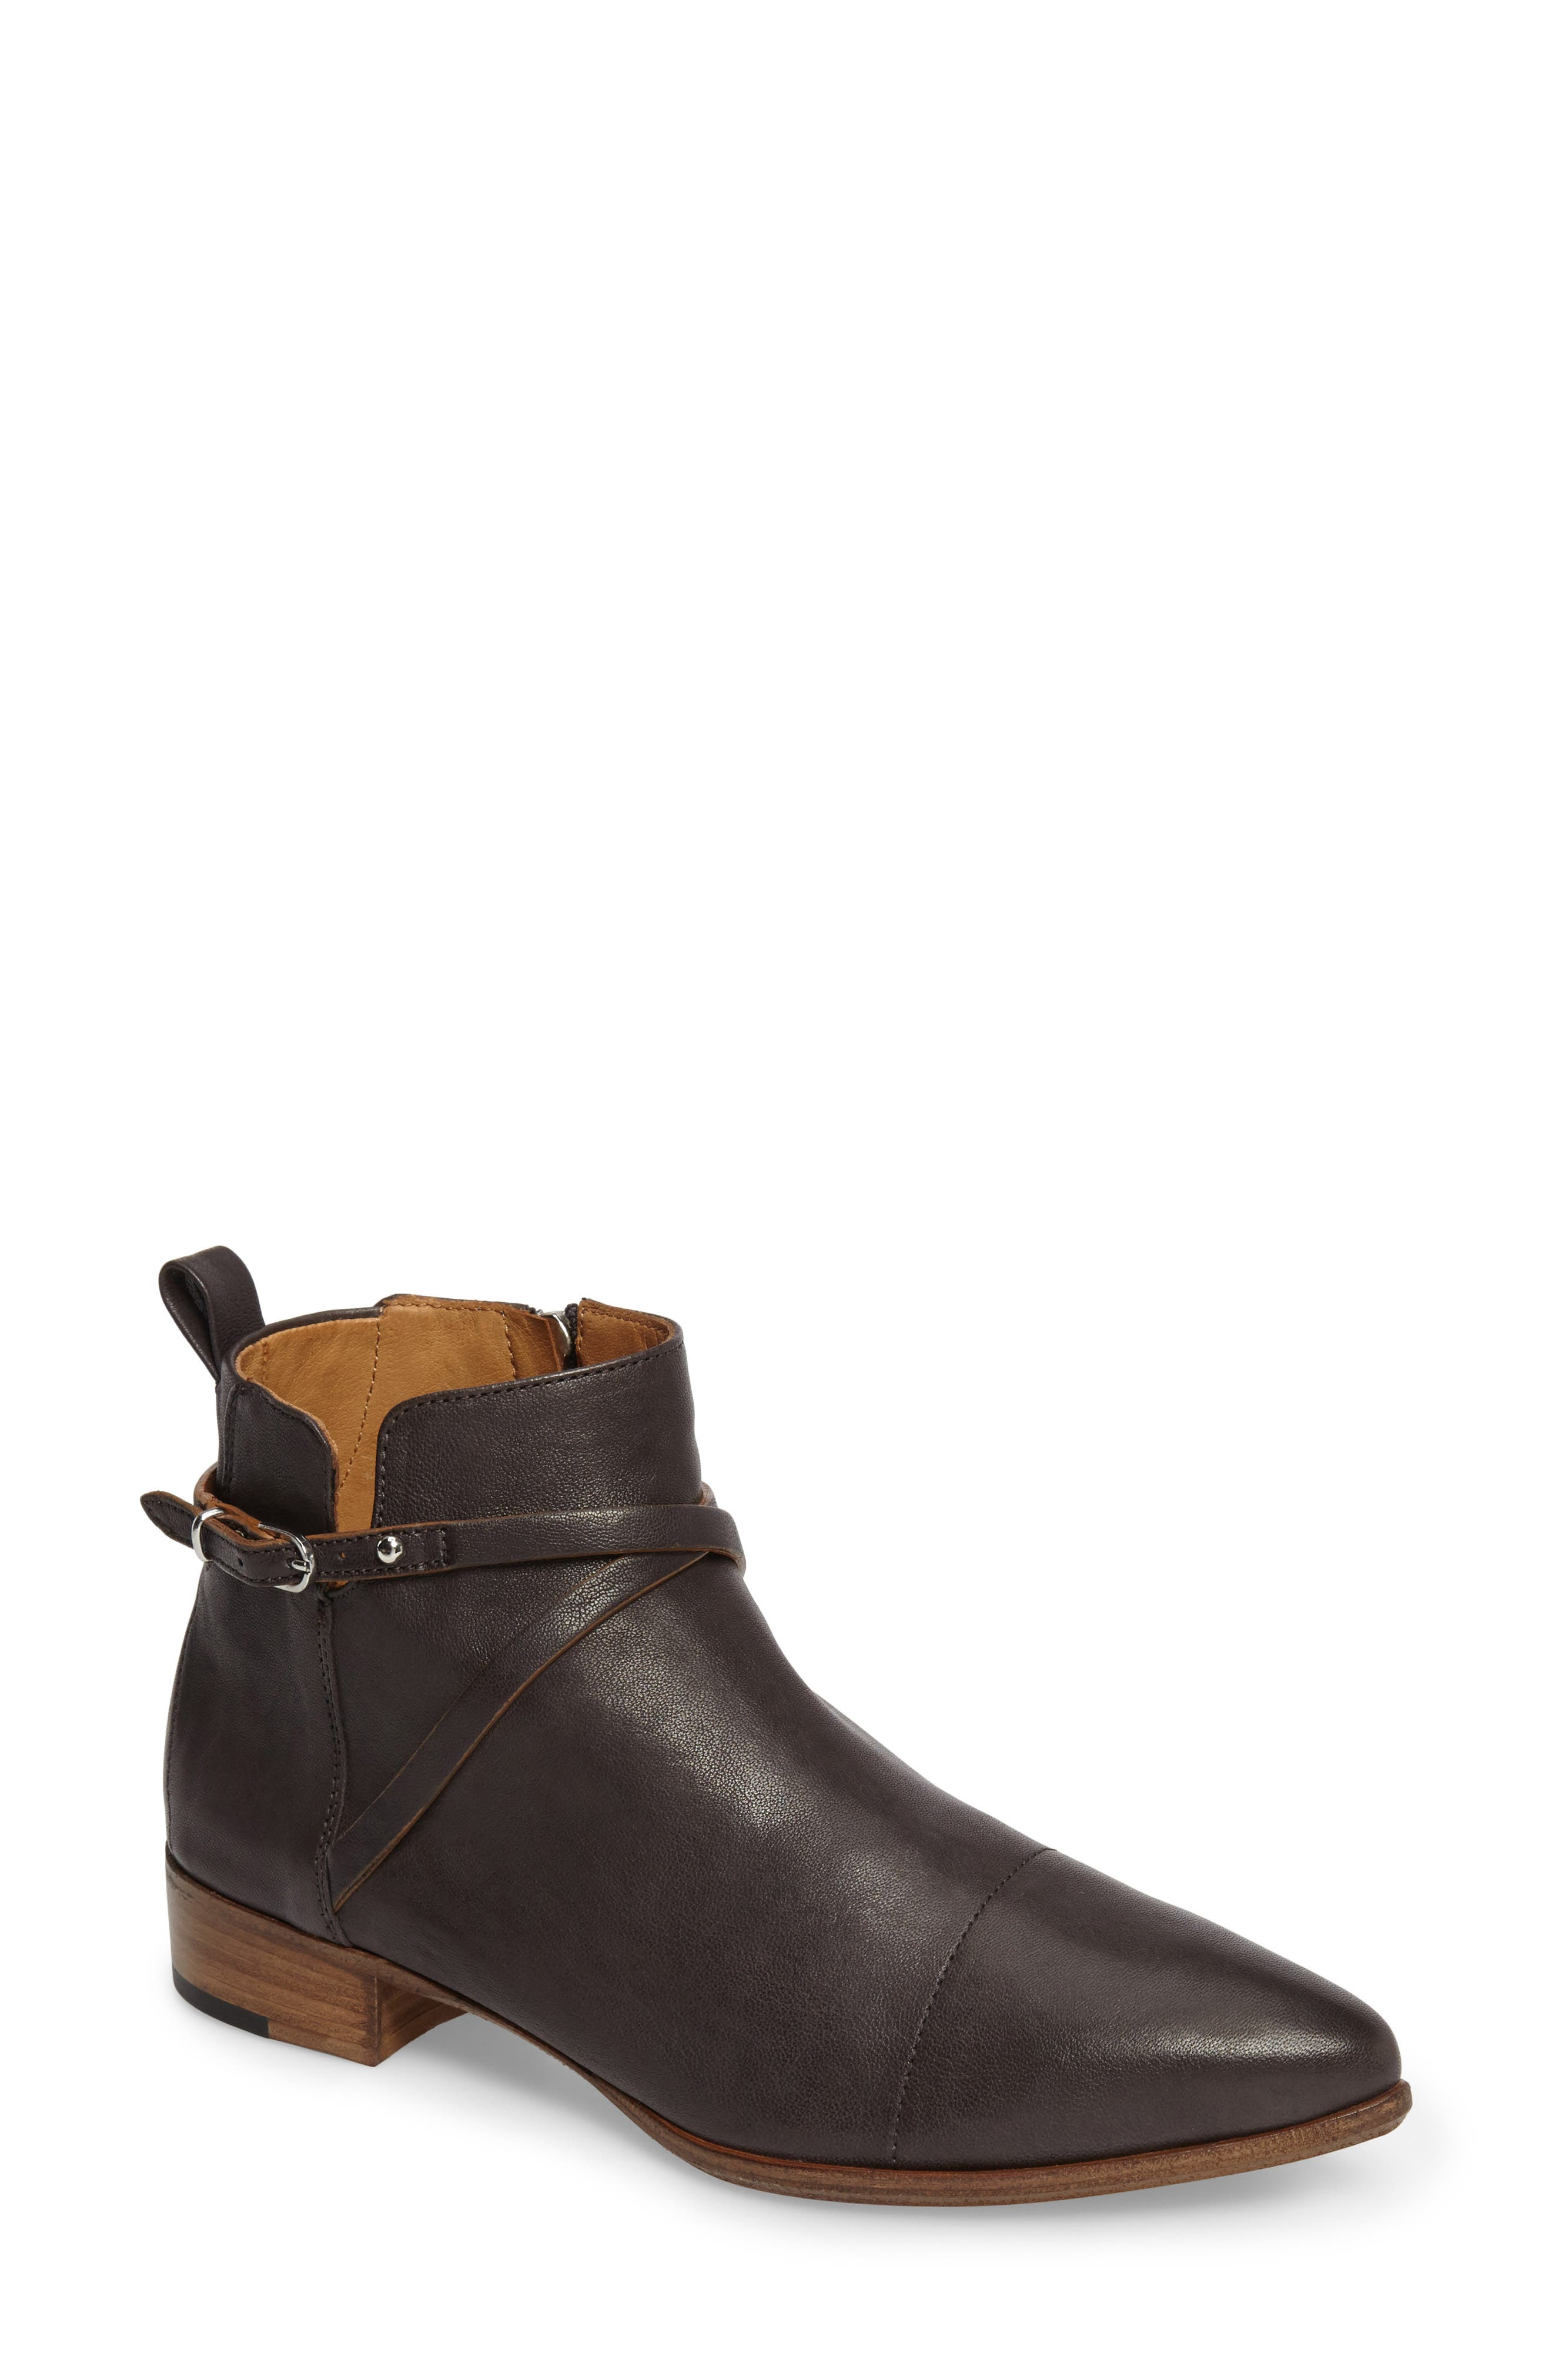 'Mea' Ankle Boot,                             Main thumbnail 1, color,                             032